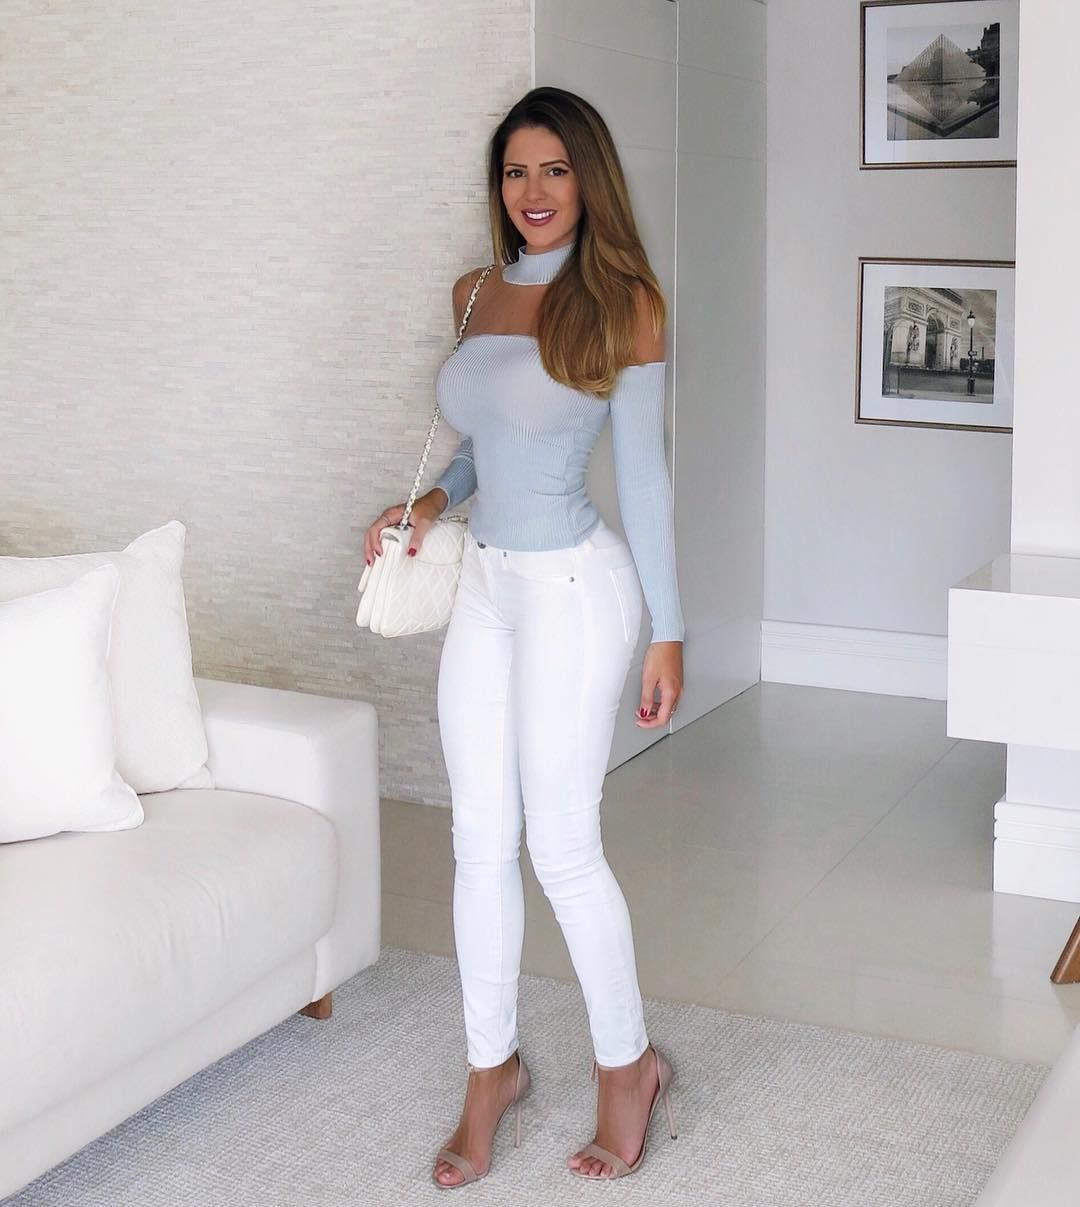 How to wear beige heels with white jeans